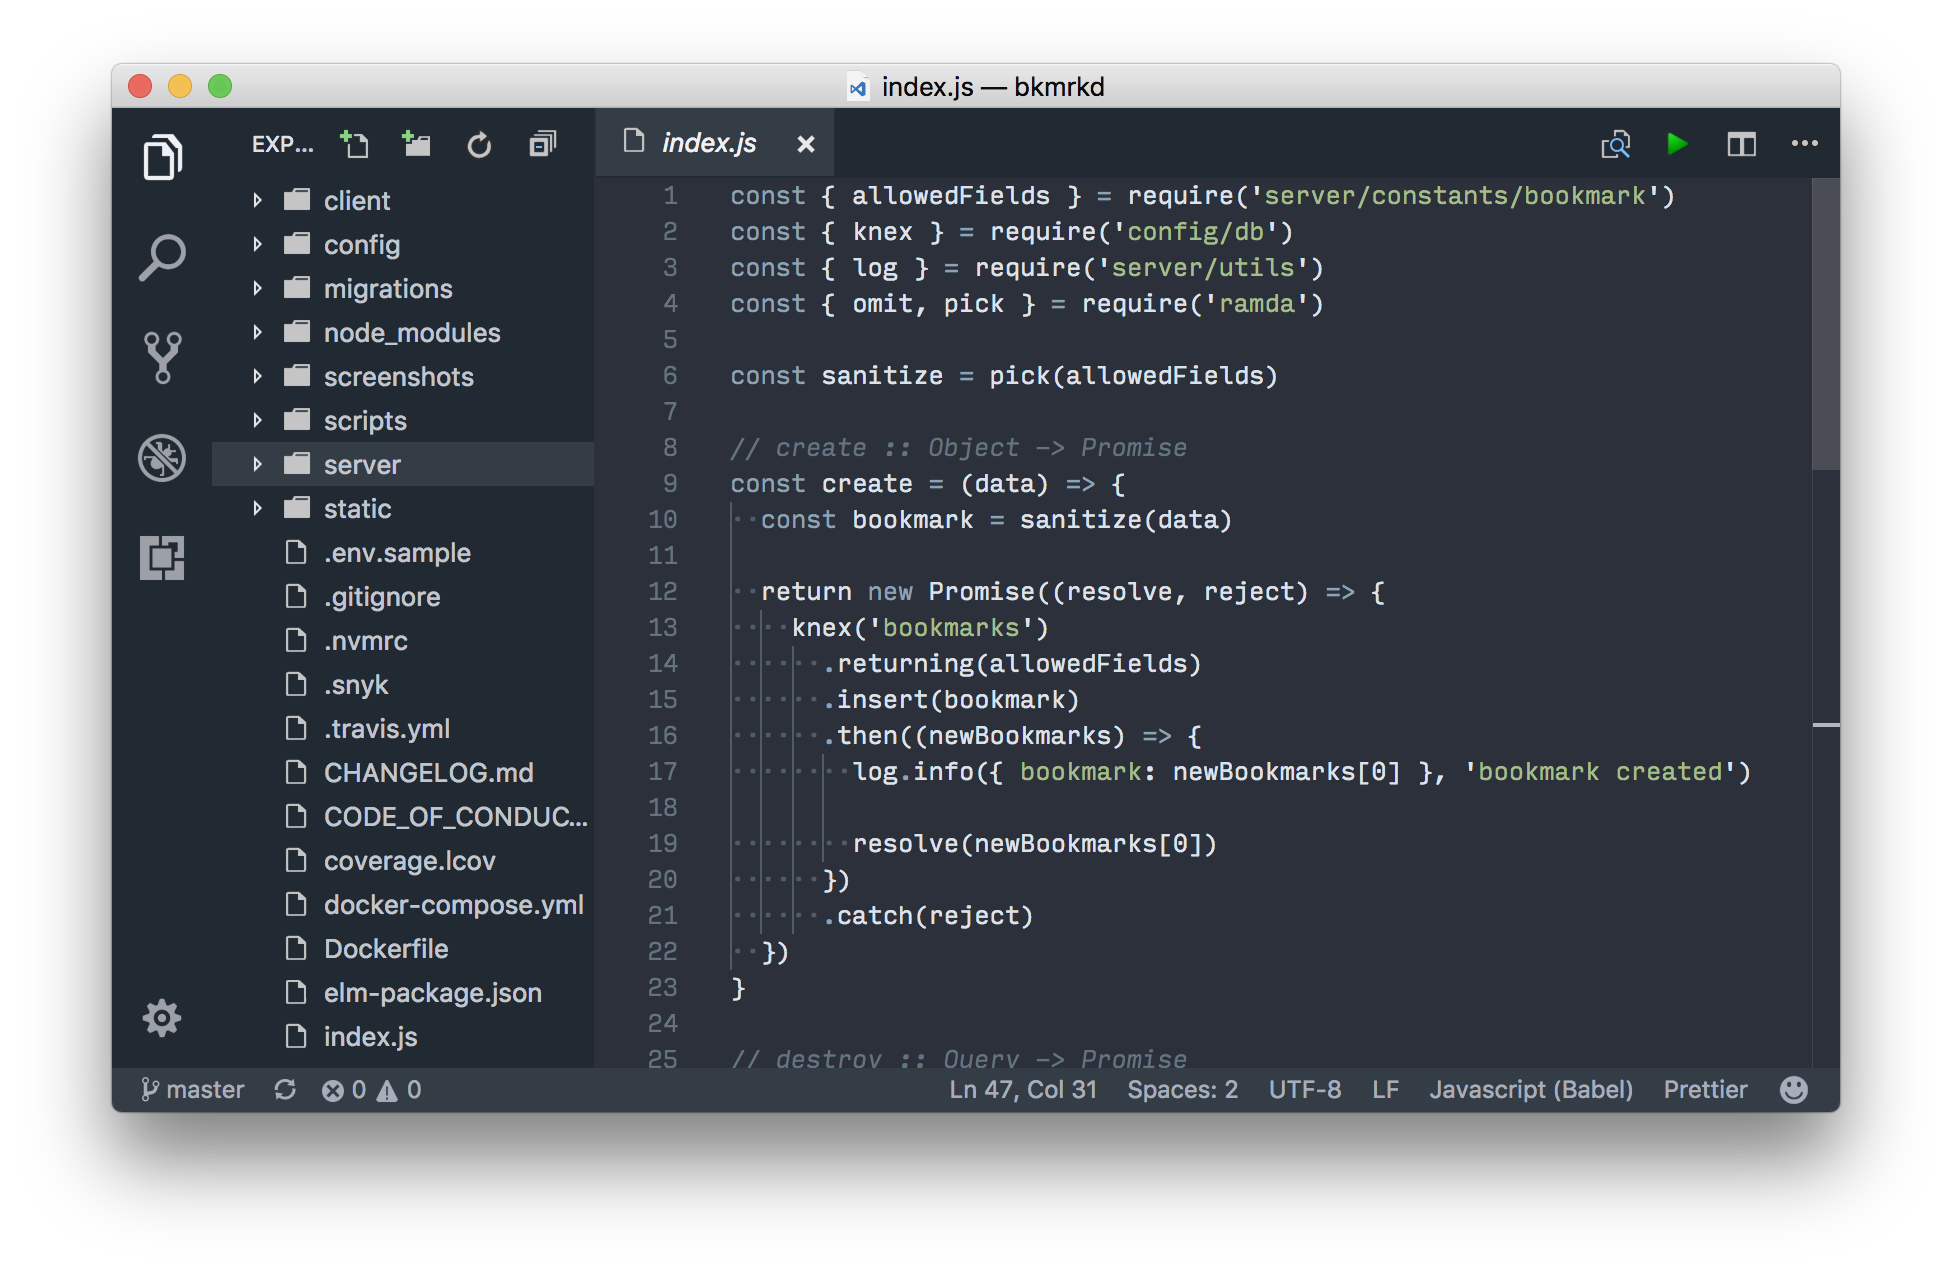 screenshot of how it looks in VSCode